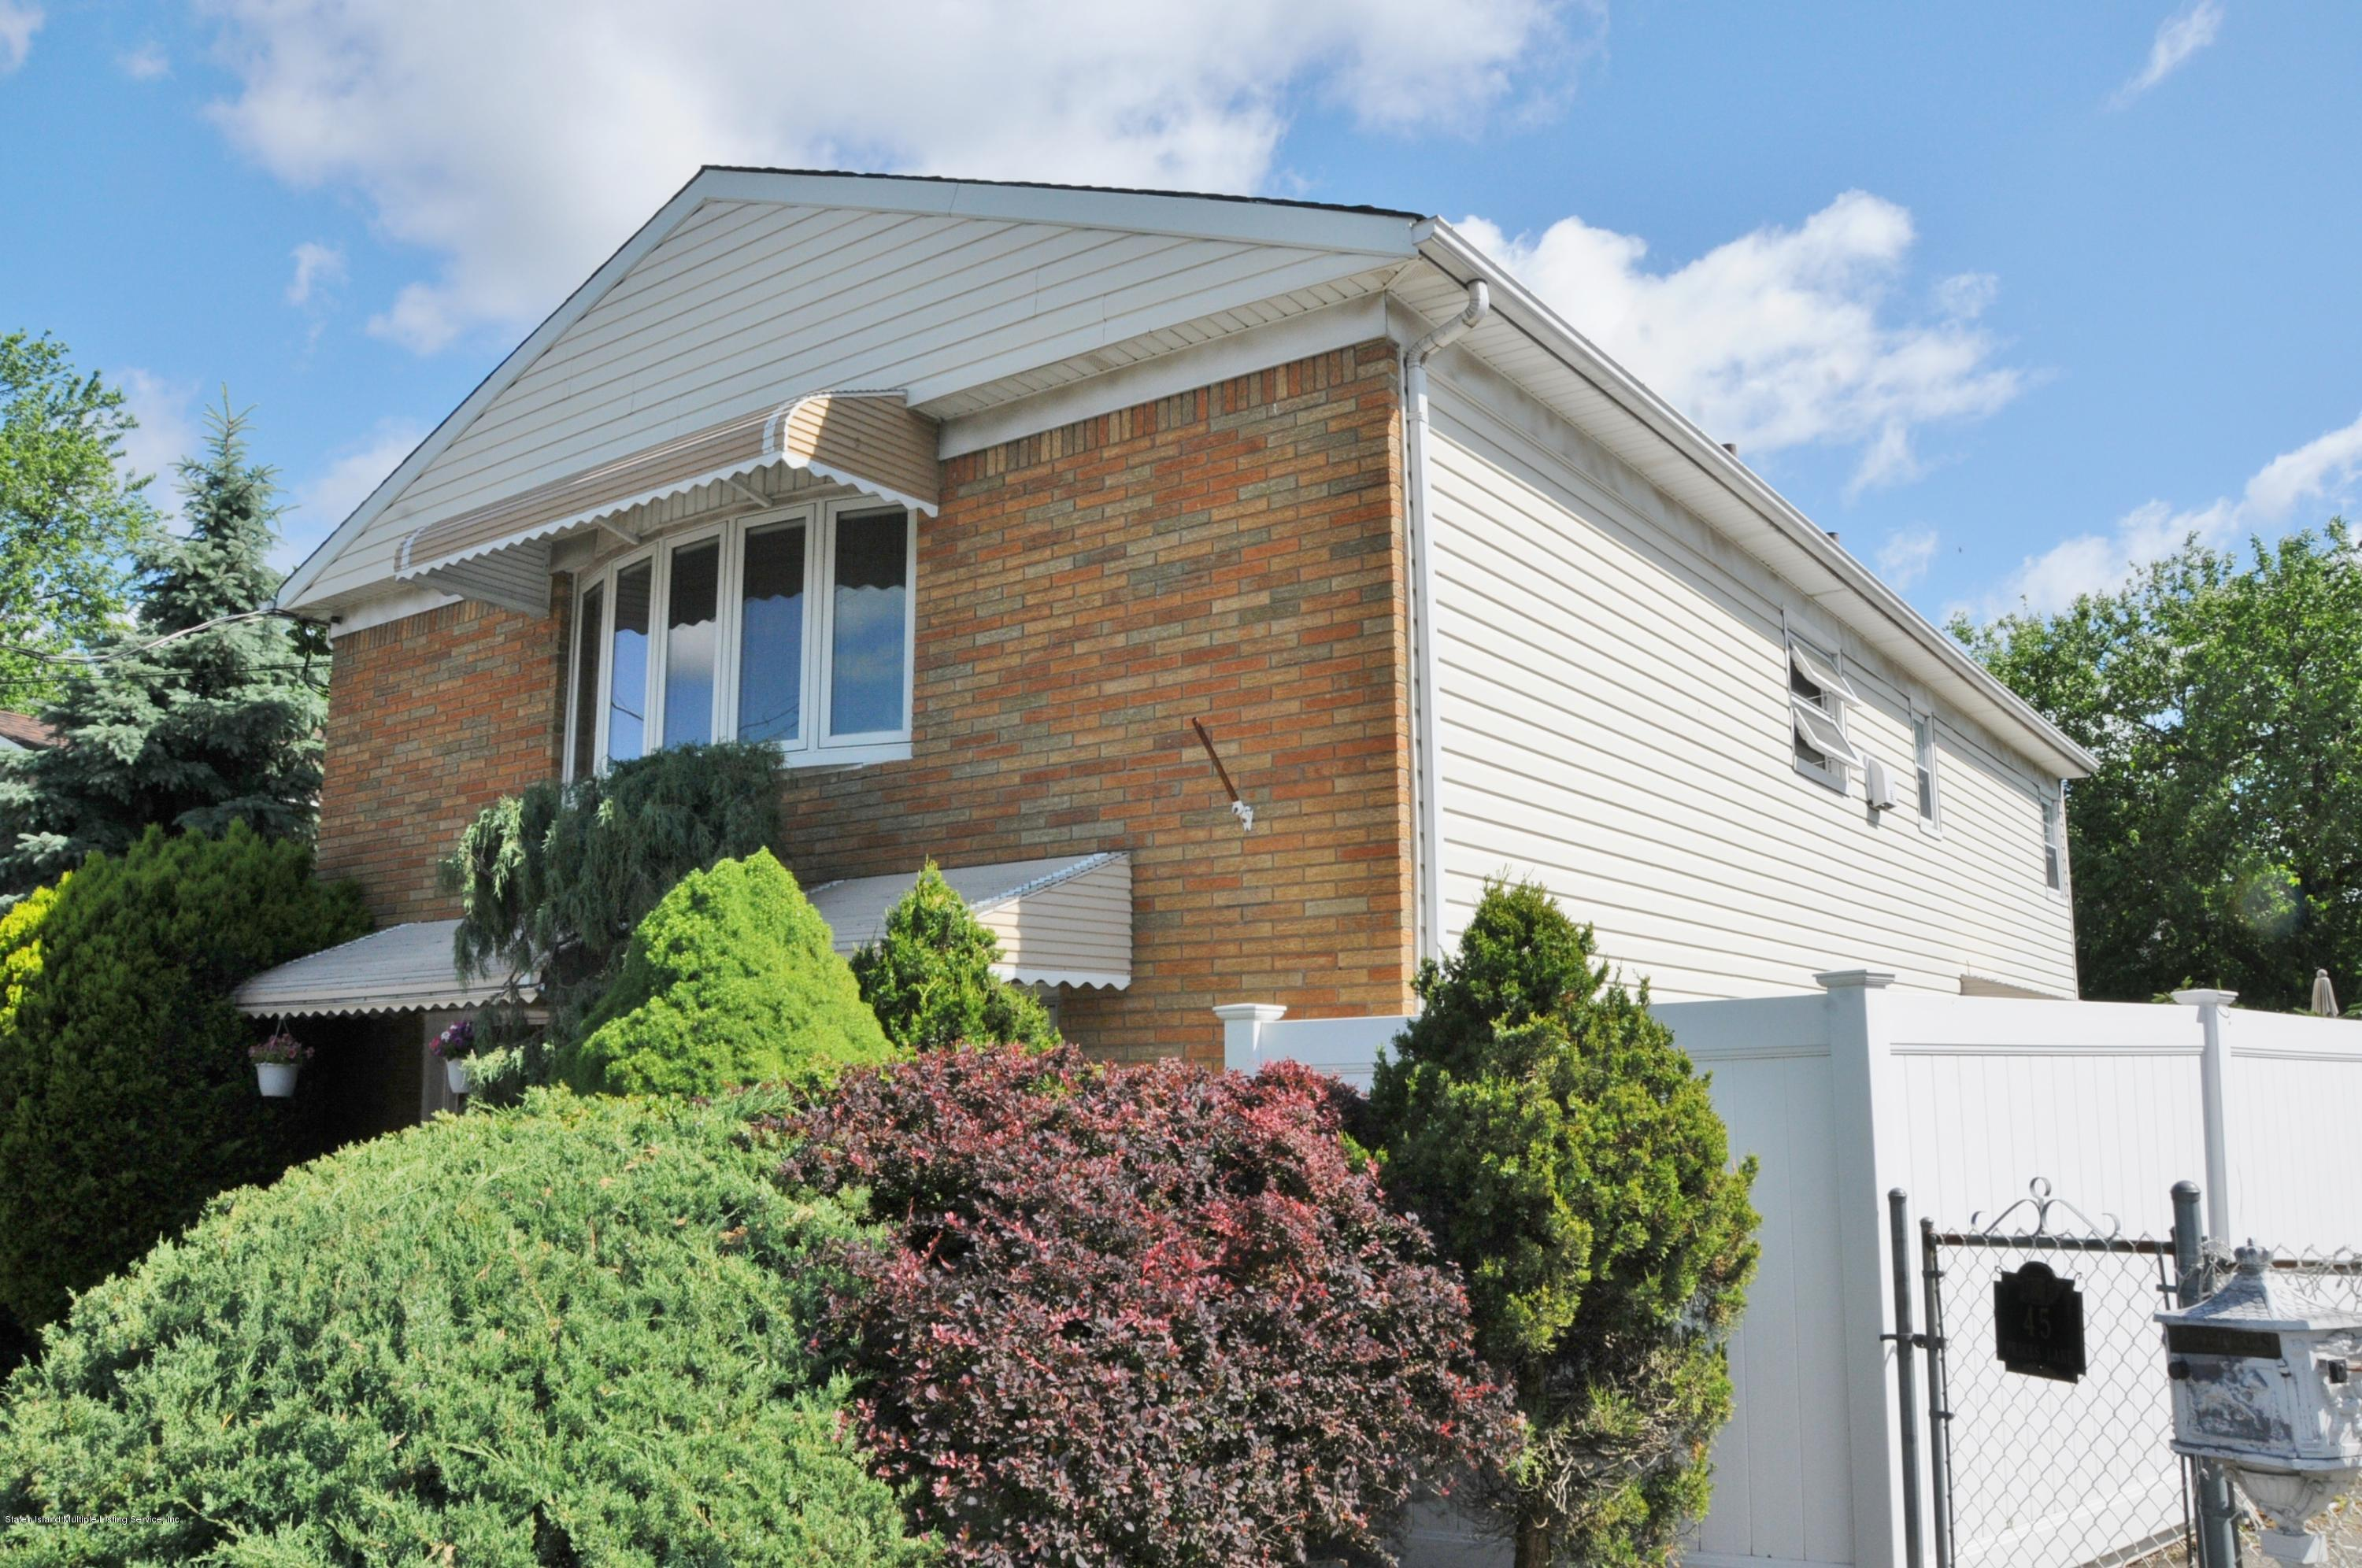 Single Family - Detached 41 Prices Lane  Staten Island, NY 10314, MLS-1129754-4